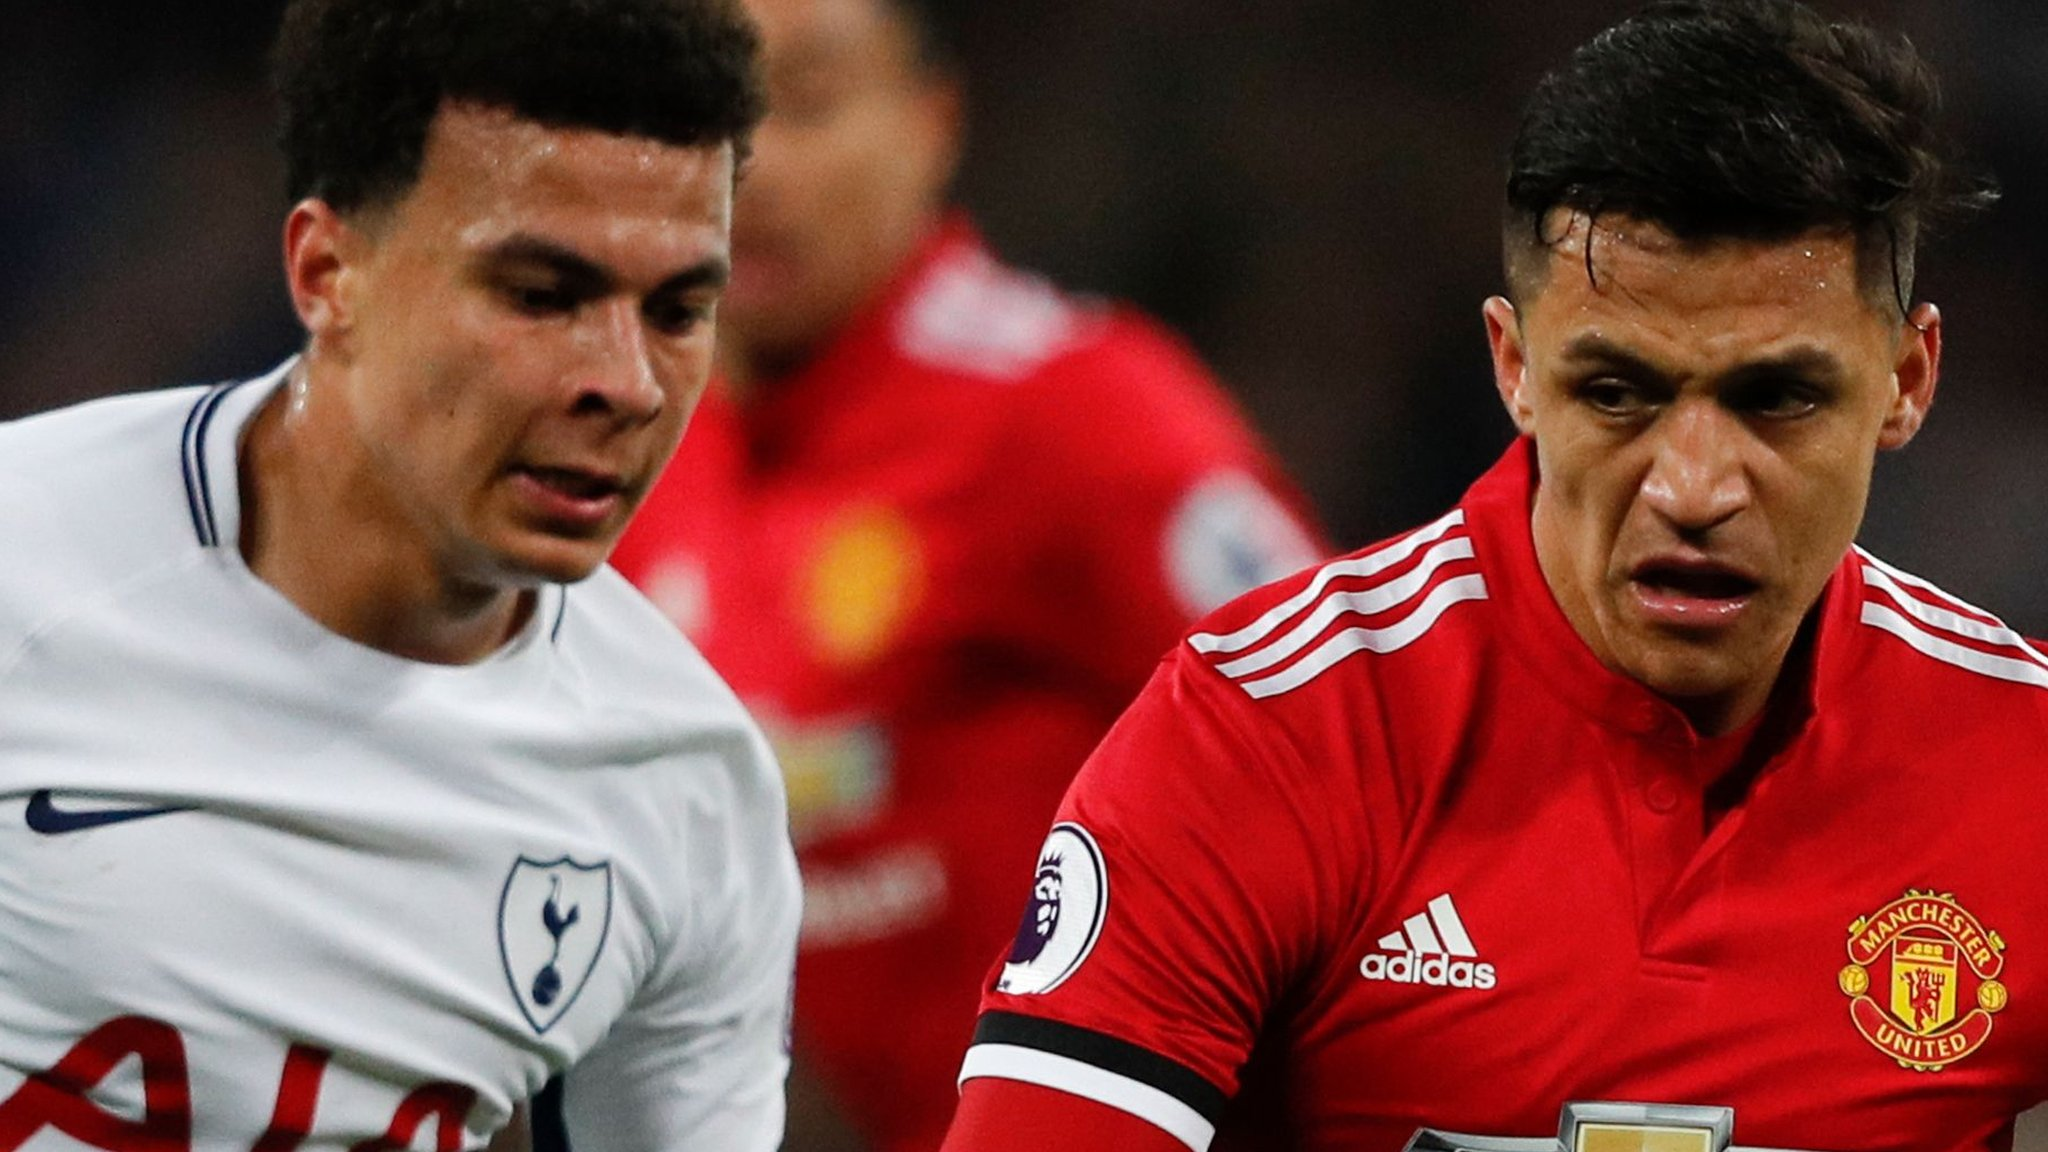 Man Utd v Tottenham FA Cup semi-final live on BBC